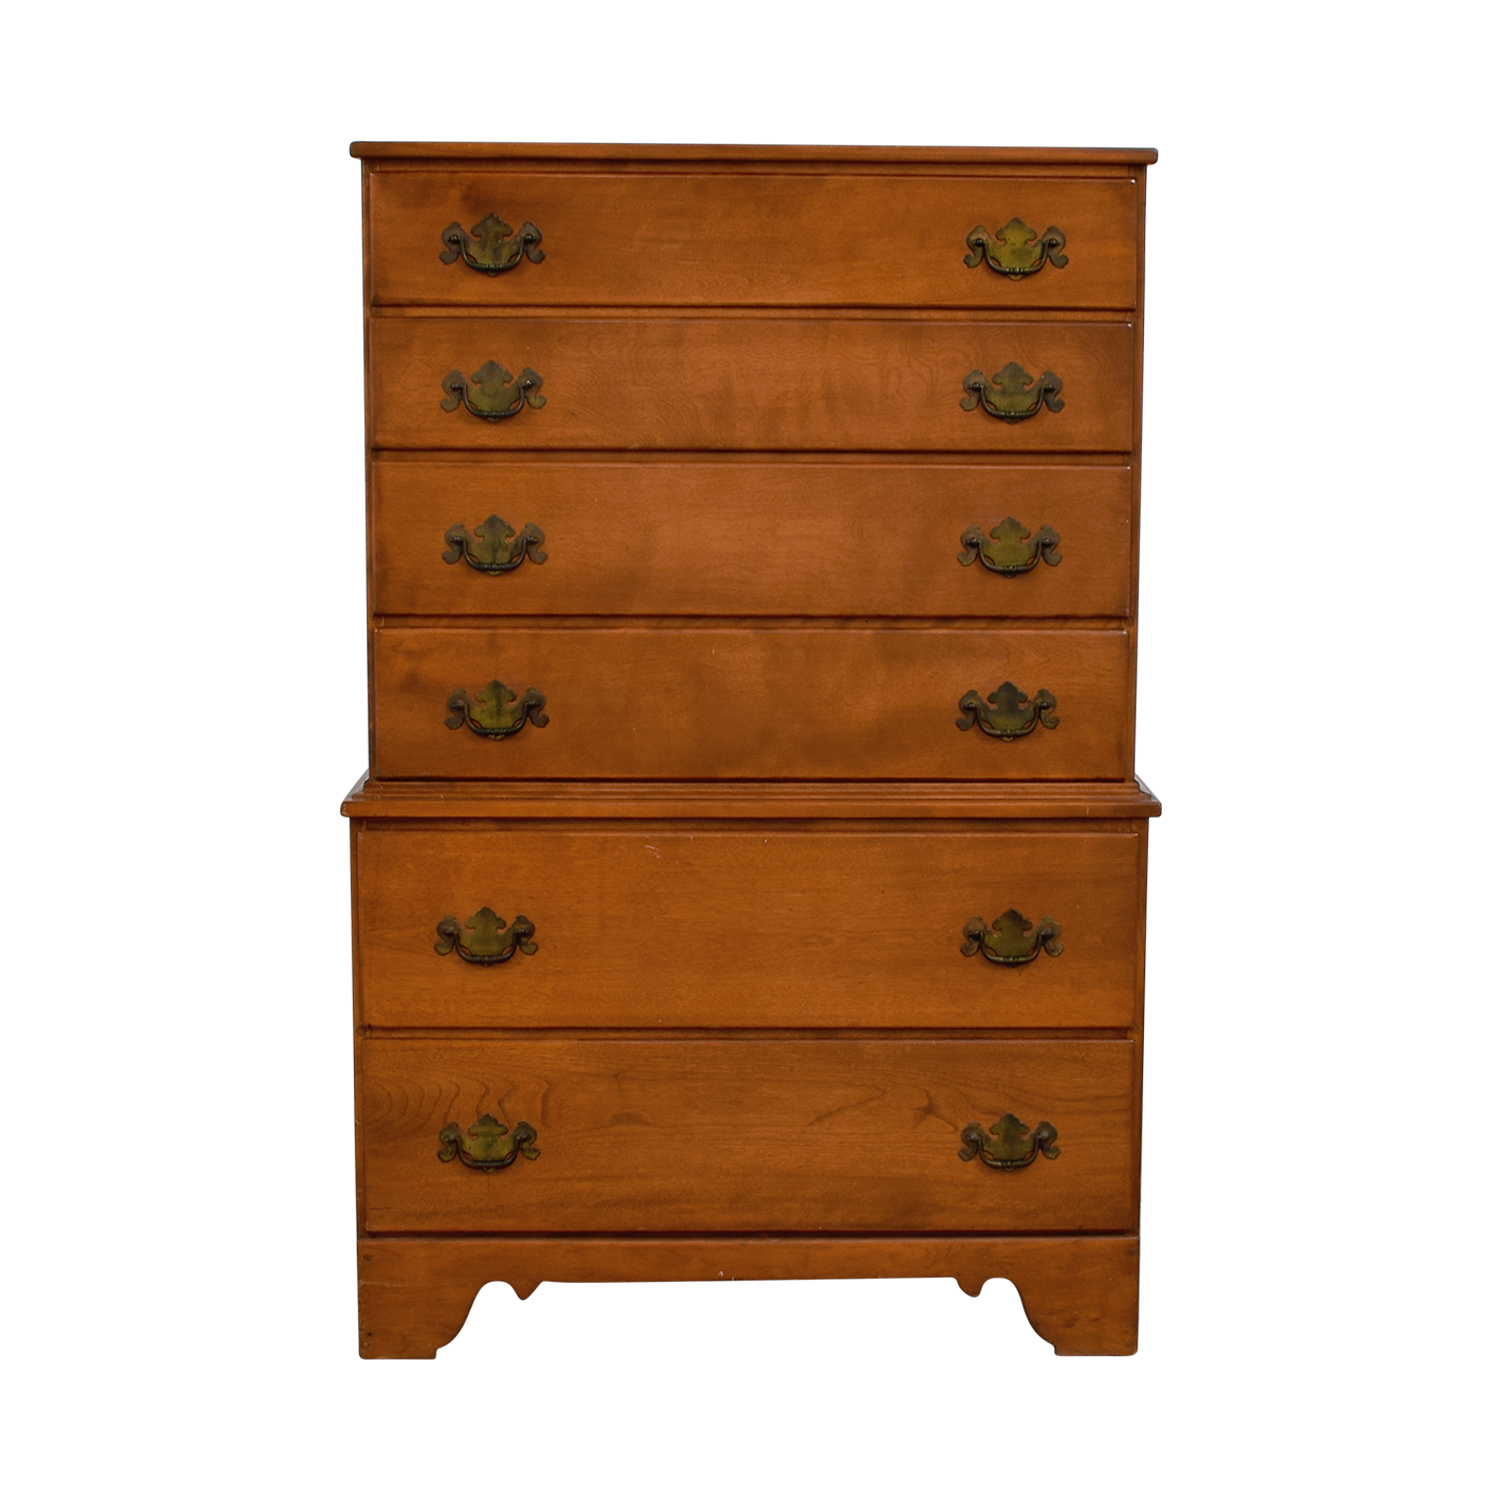 Ethan Allen Baumritter Vermont Nutmeg Maple Tall Dresser Light Brown